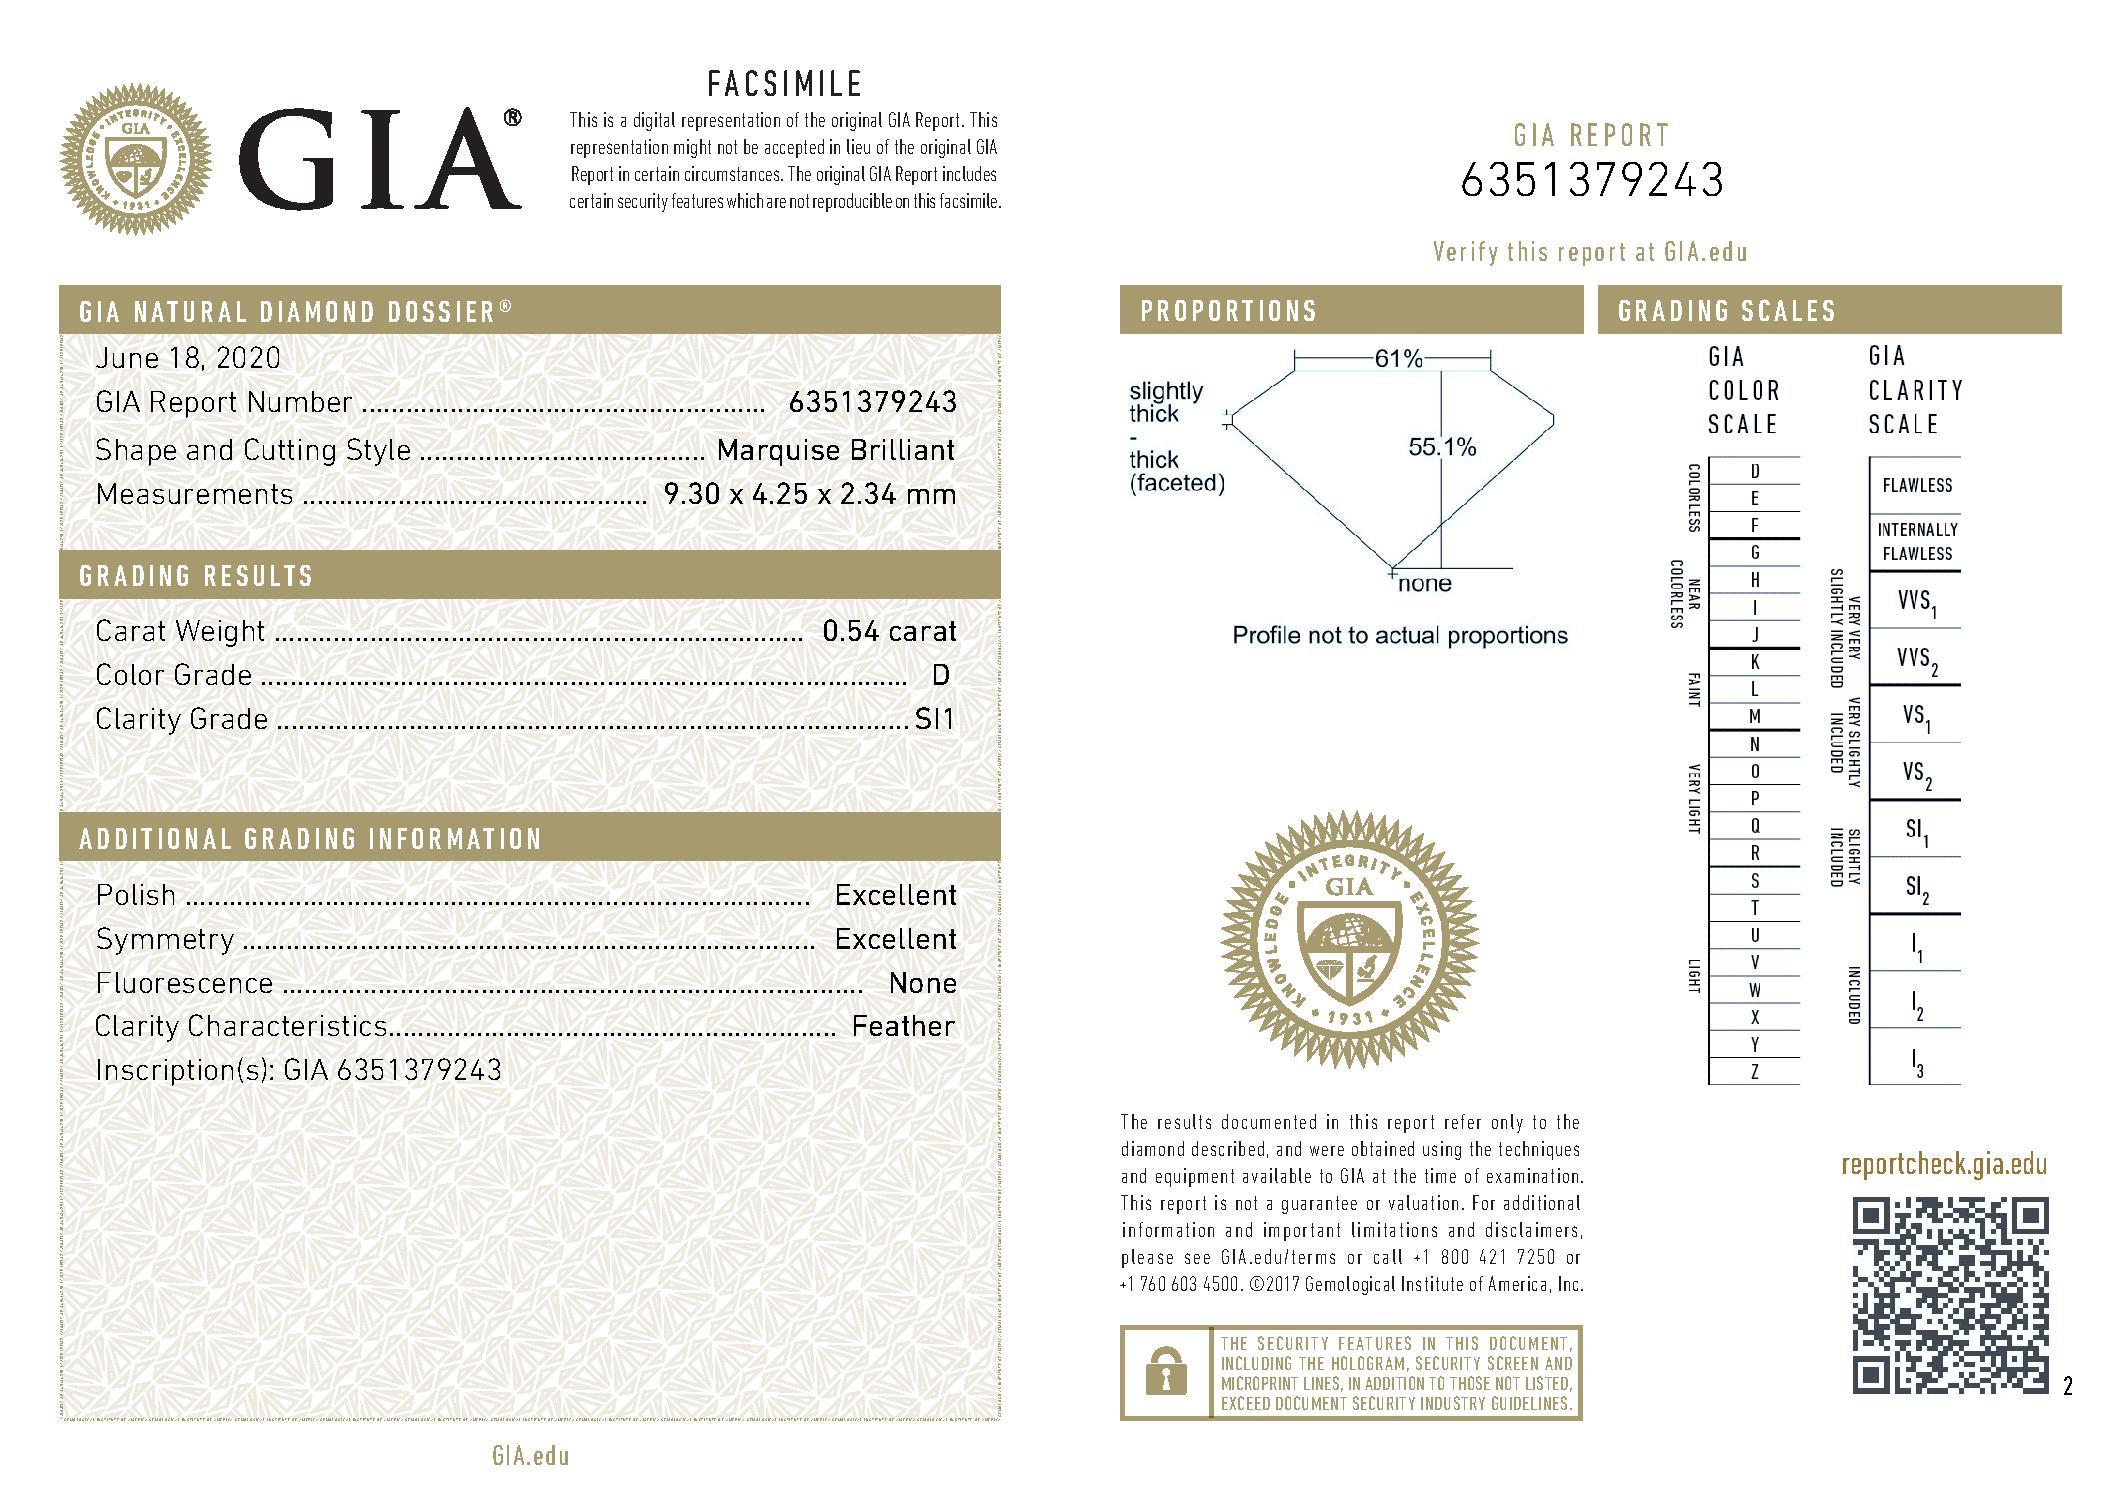 This is a 0.54 carat marquise shape, D color, SI1 clarity natural diamond accompanied by a GIA grading report.